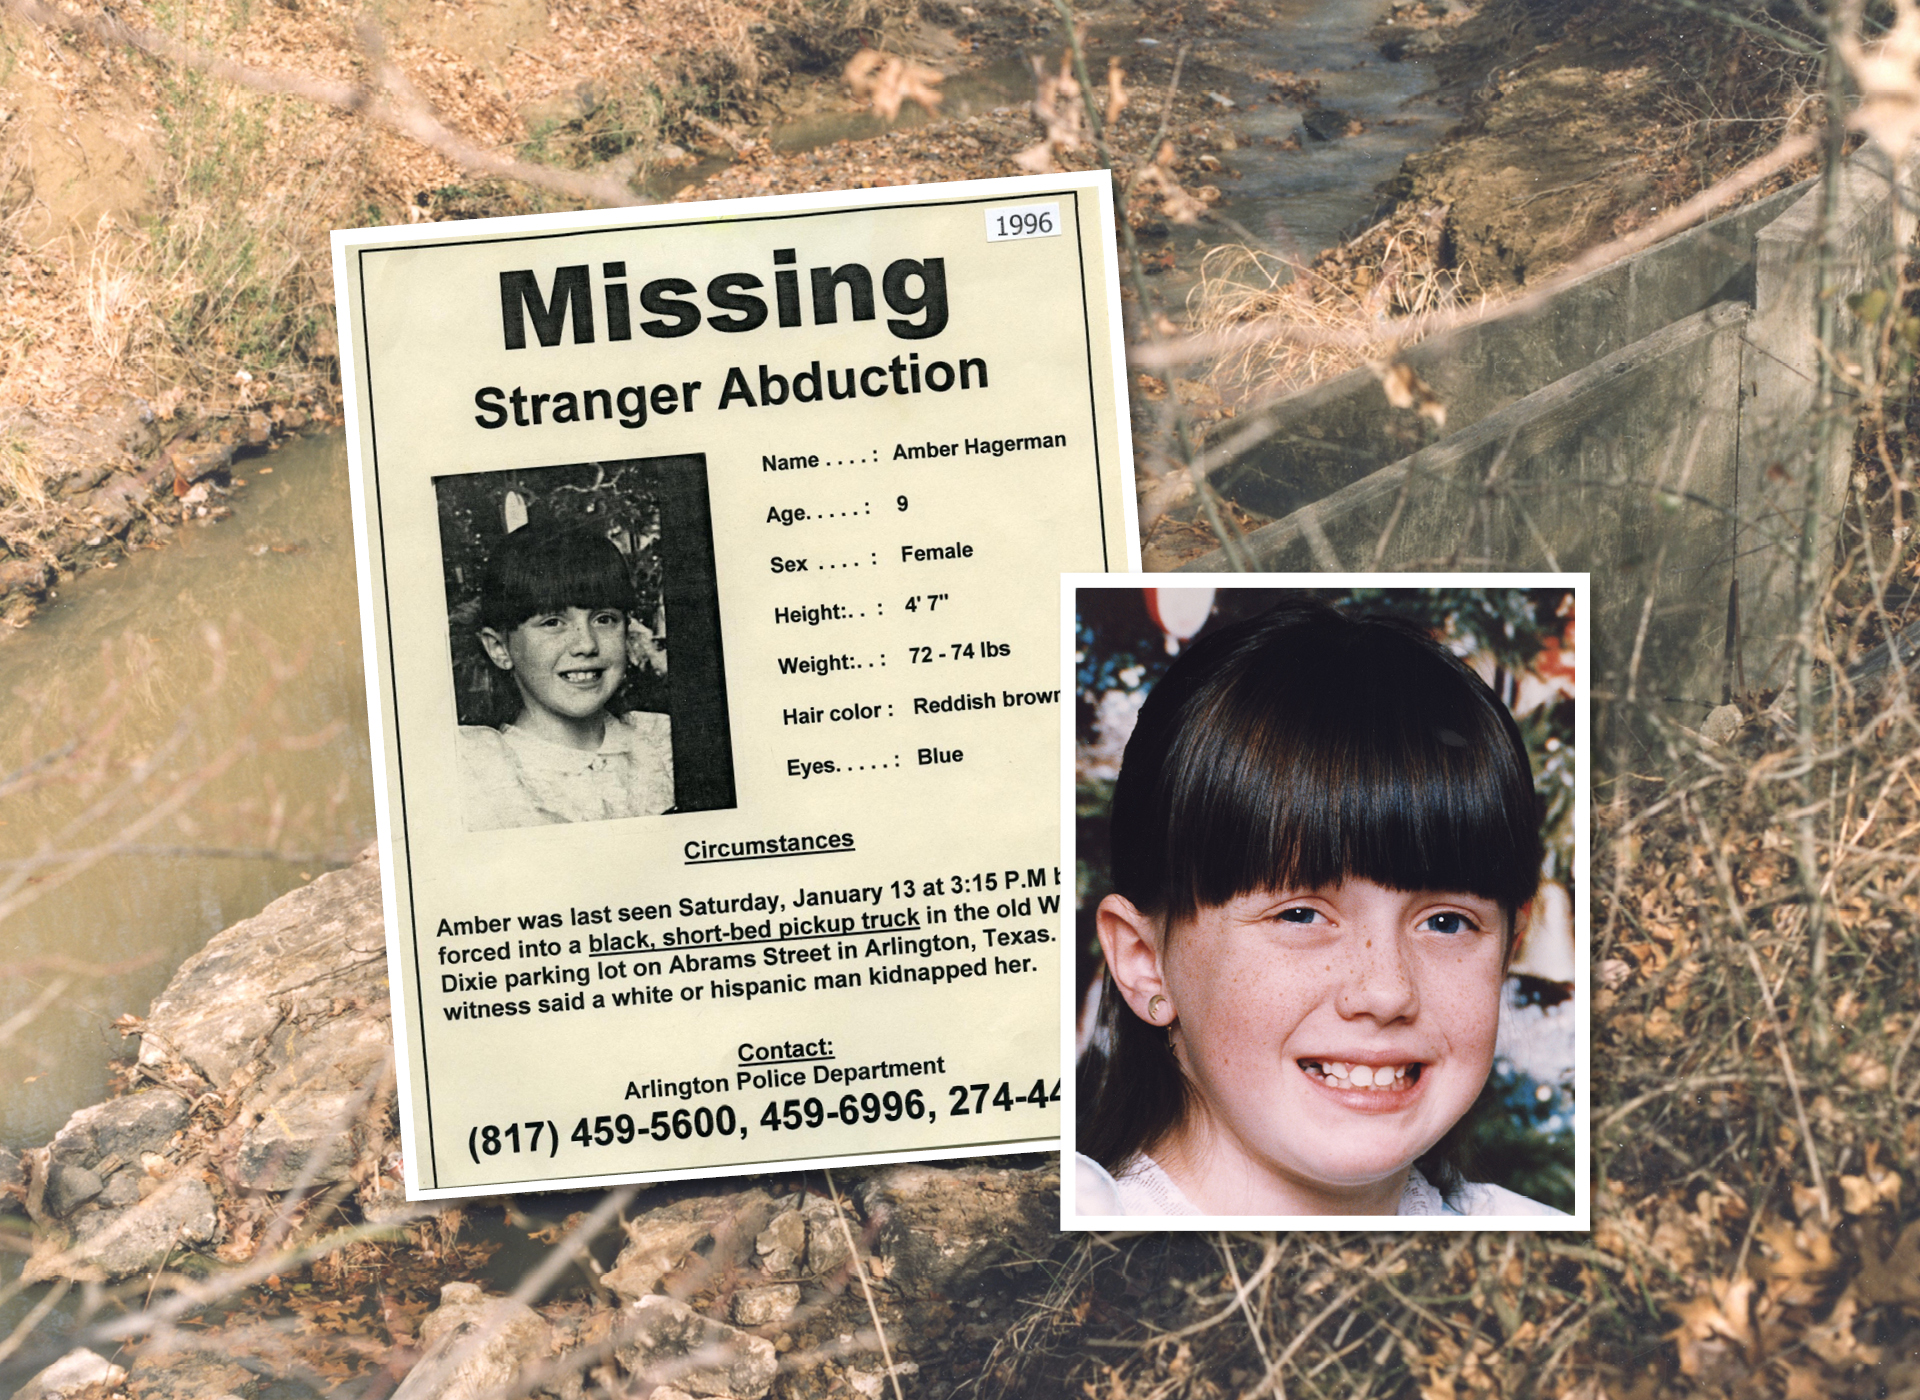 Amber's missing poster with creek in the background